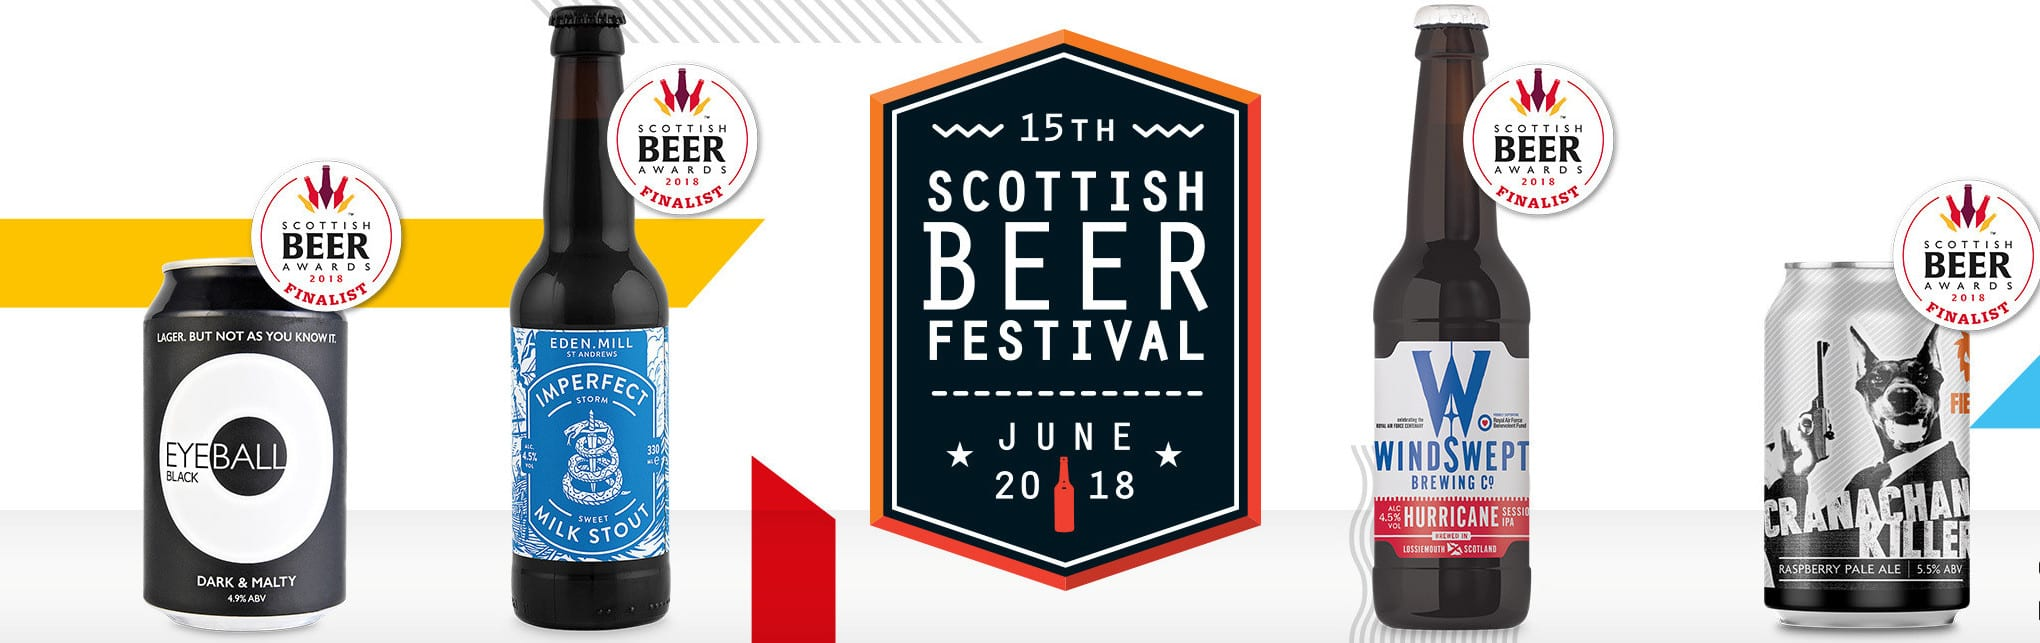 aldi scottish beer festival